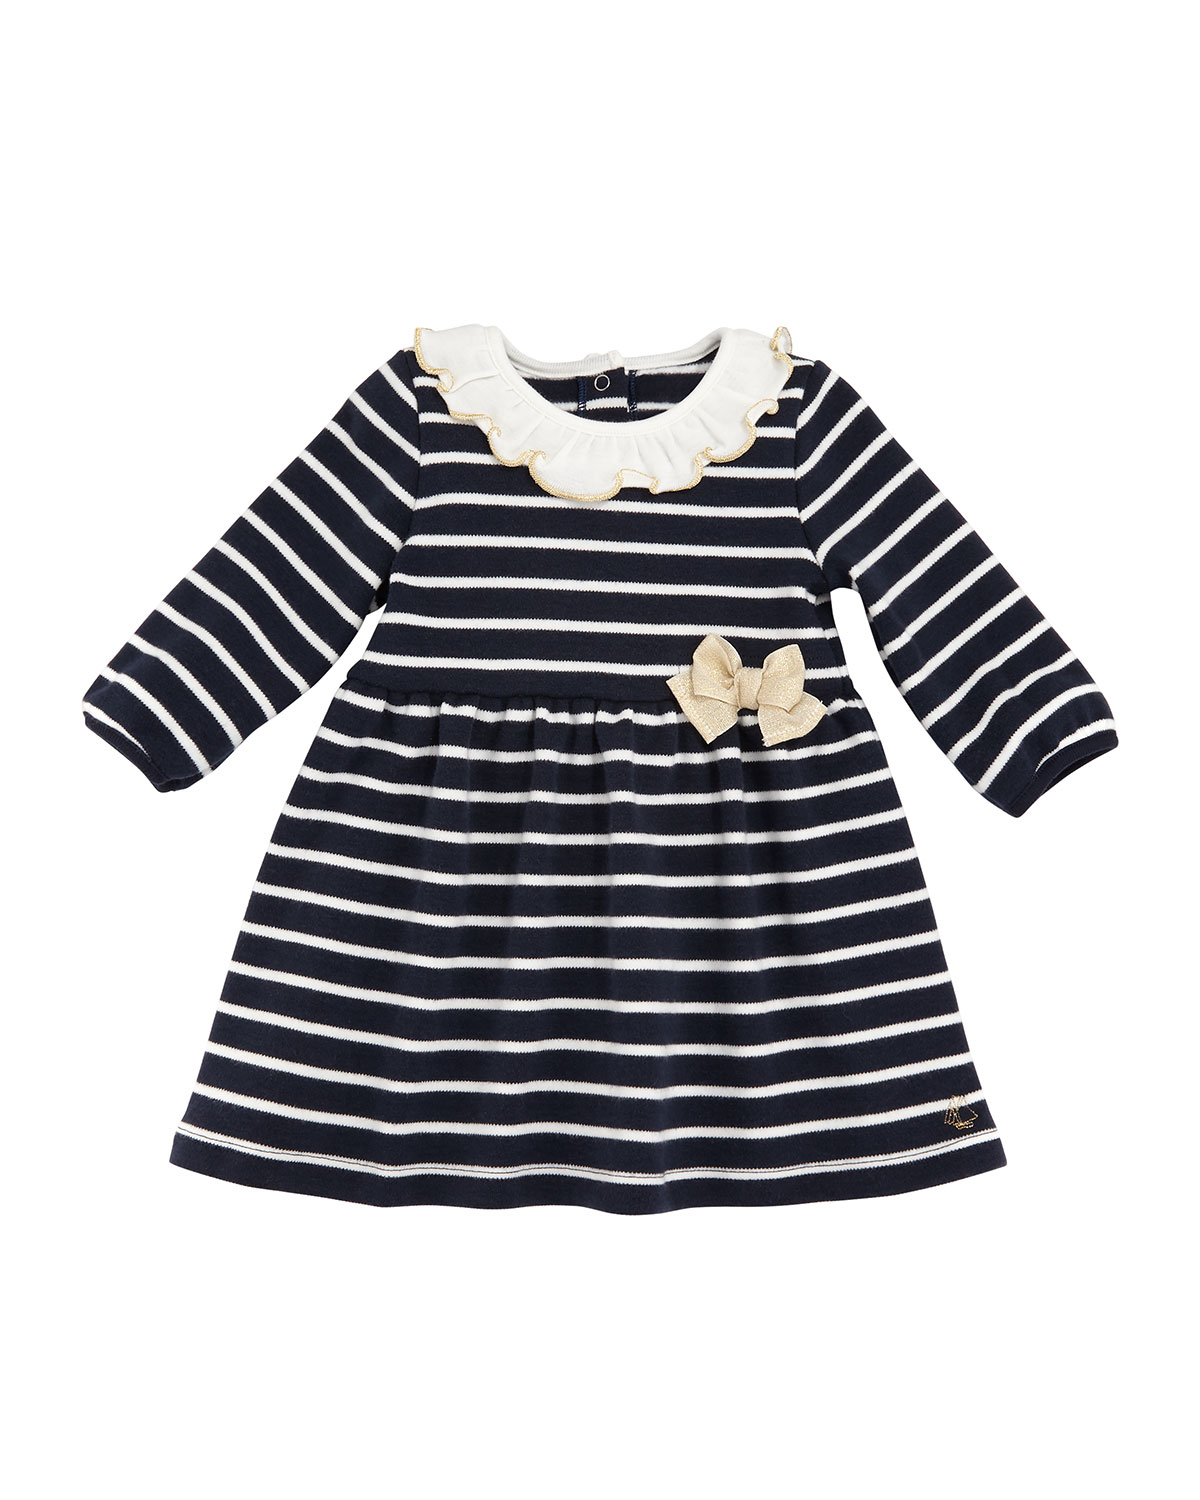 3-6 Months Baby Girls Clothes Striped Baby K Cotton Dress